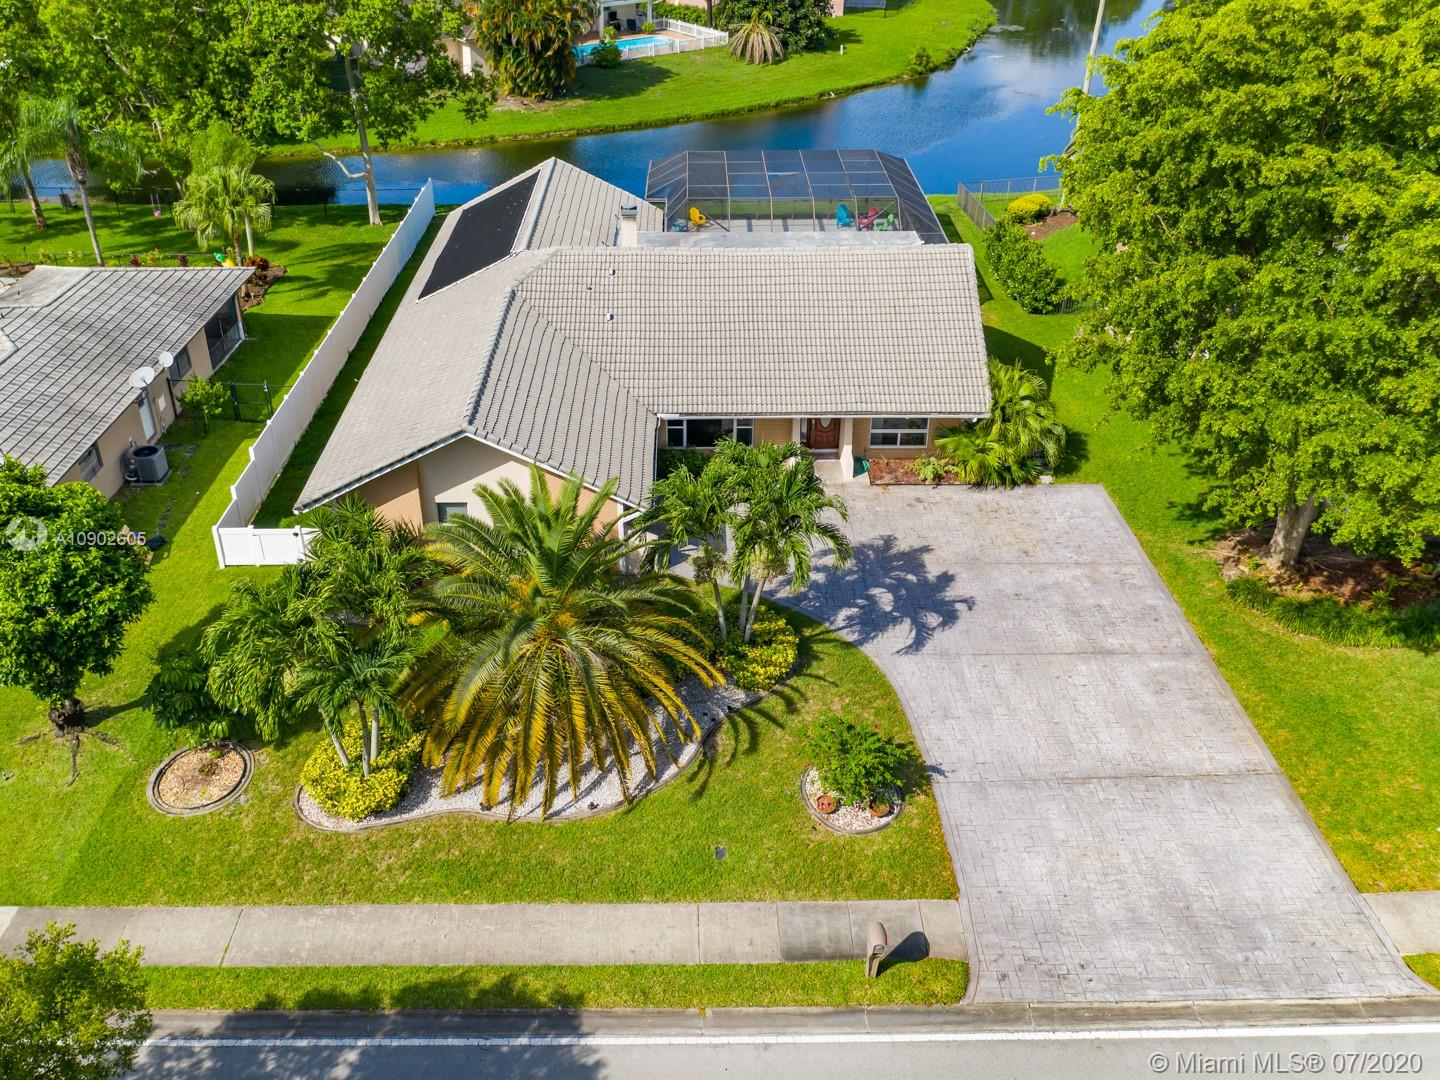 LOCATION, LOCATION, LOCATION - AND A BEAUTIFUL, WATERFRONT POOL HOME TO GO WITH IT!  MIRACULOUS 4/2.5 with MASSIVE Living Areas and Den, Working Hot Tub and Heated Pool, Giant Lot IN THE MIDDLE OF EVERYTHING!  WALKING DISTANCE to Atlantic and University, PUBLIX, SAM'S, HOME DEPOT, BEST BUY, DUNKIN, STARBUCKS RIGHT Down the Street!  HUNDREDS of Stores and Restaurants surround this Tranquil Pool Home with IMPACT WINDOWS & IMPACT GARAGE DOOR, A+ wind rated!  Heated Pool with Salt Water + Solar system, MASSIVE Living Area, WORKING FIREPLACE, Large Rooms & Tons of Storage in the Garage.  Too Many Updates to List, CANAL VIEWS, PARK OVER 12 CARS IN THE DRIVEWAY!  Screened in Patio and Pool on a Large Lot gives you the Ultimate Florida Lifestyle with EVERYTHING YOU NEED within a 5-minute Drive!